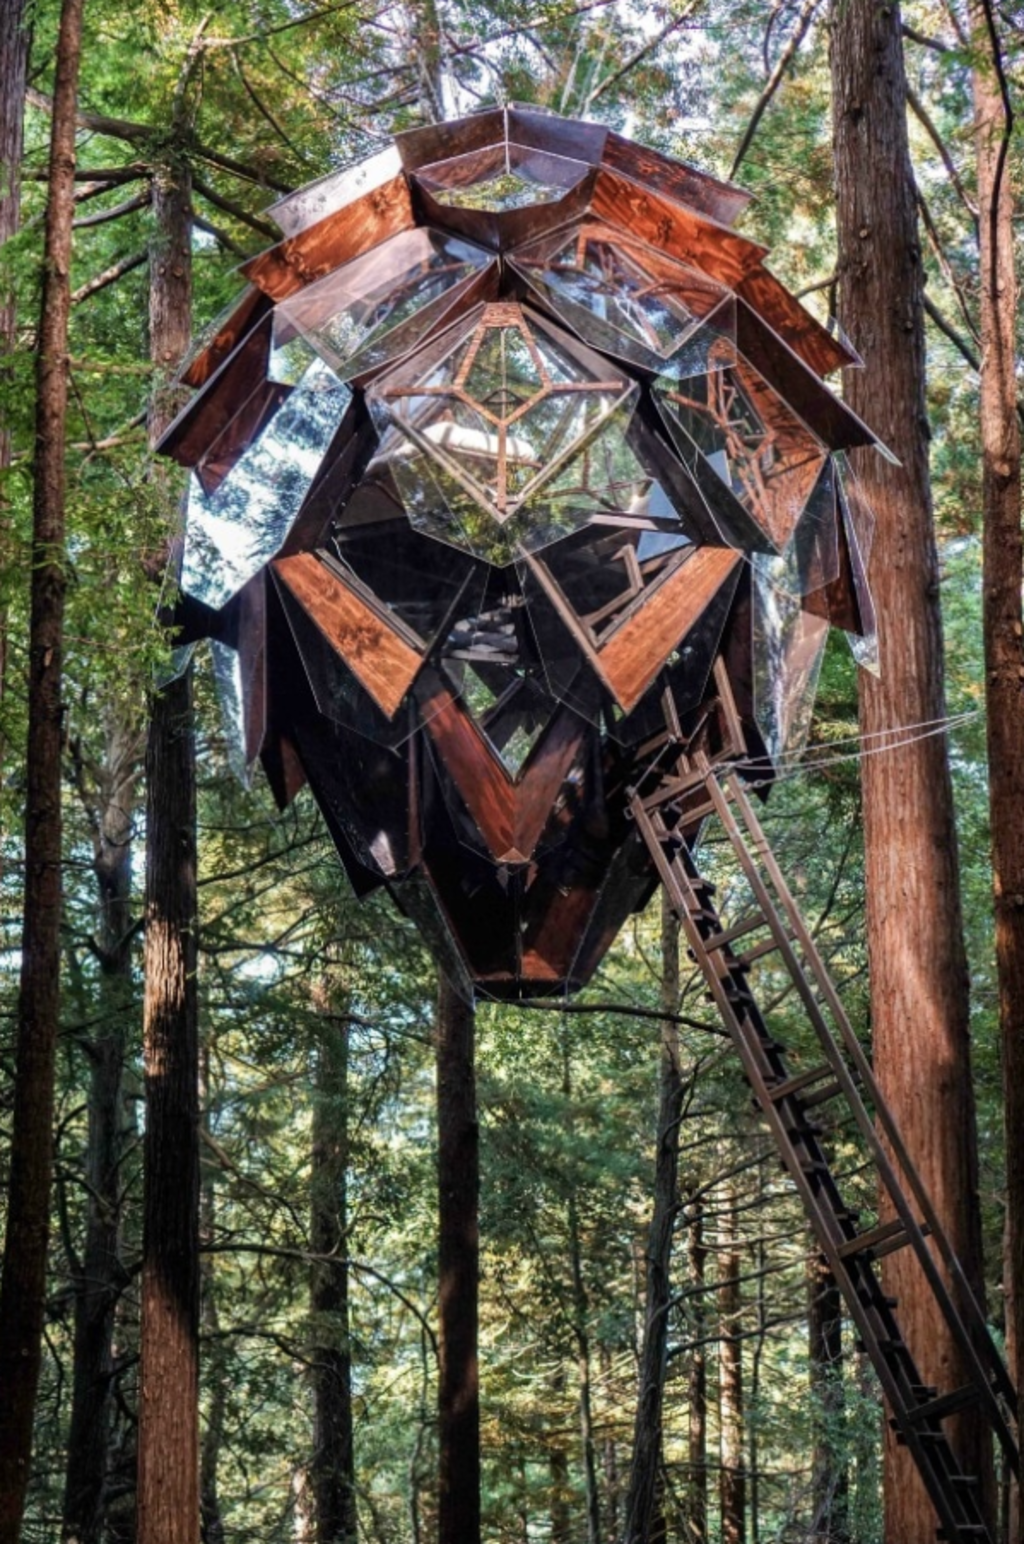 Just like a pinecone, there's a strong symmetry to the geodesic structure. Photo: Alissa Kolom